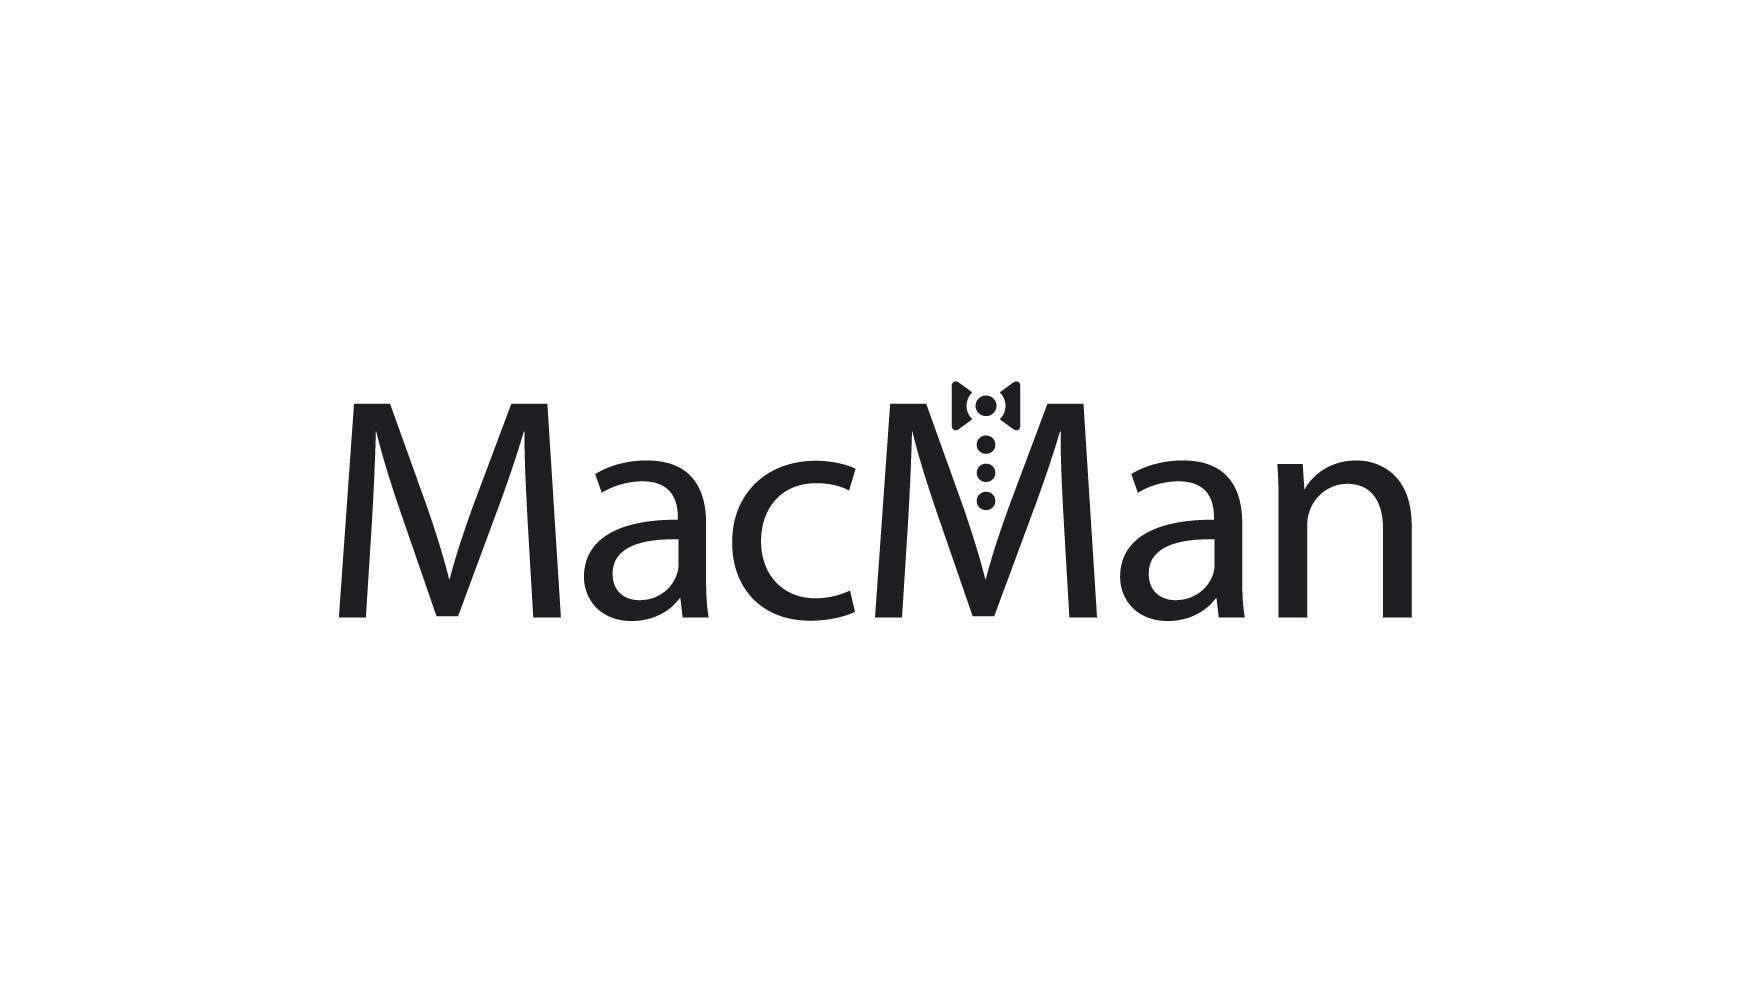 Read MacMan Reviews